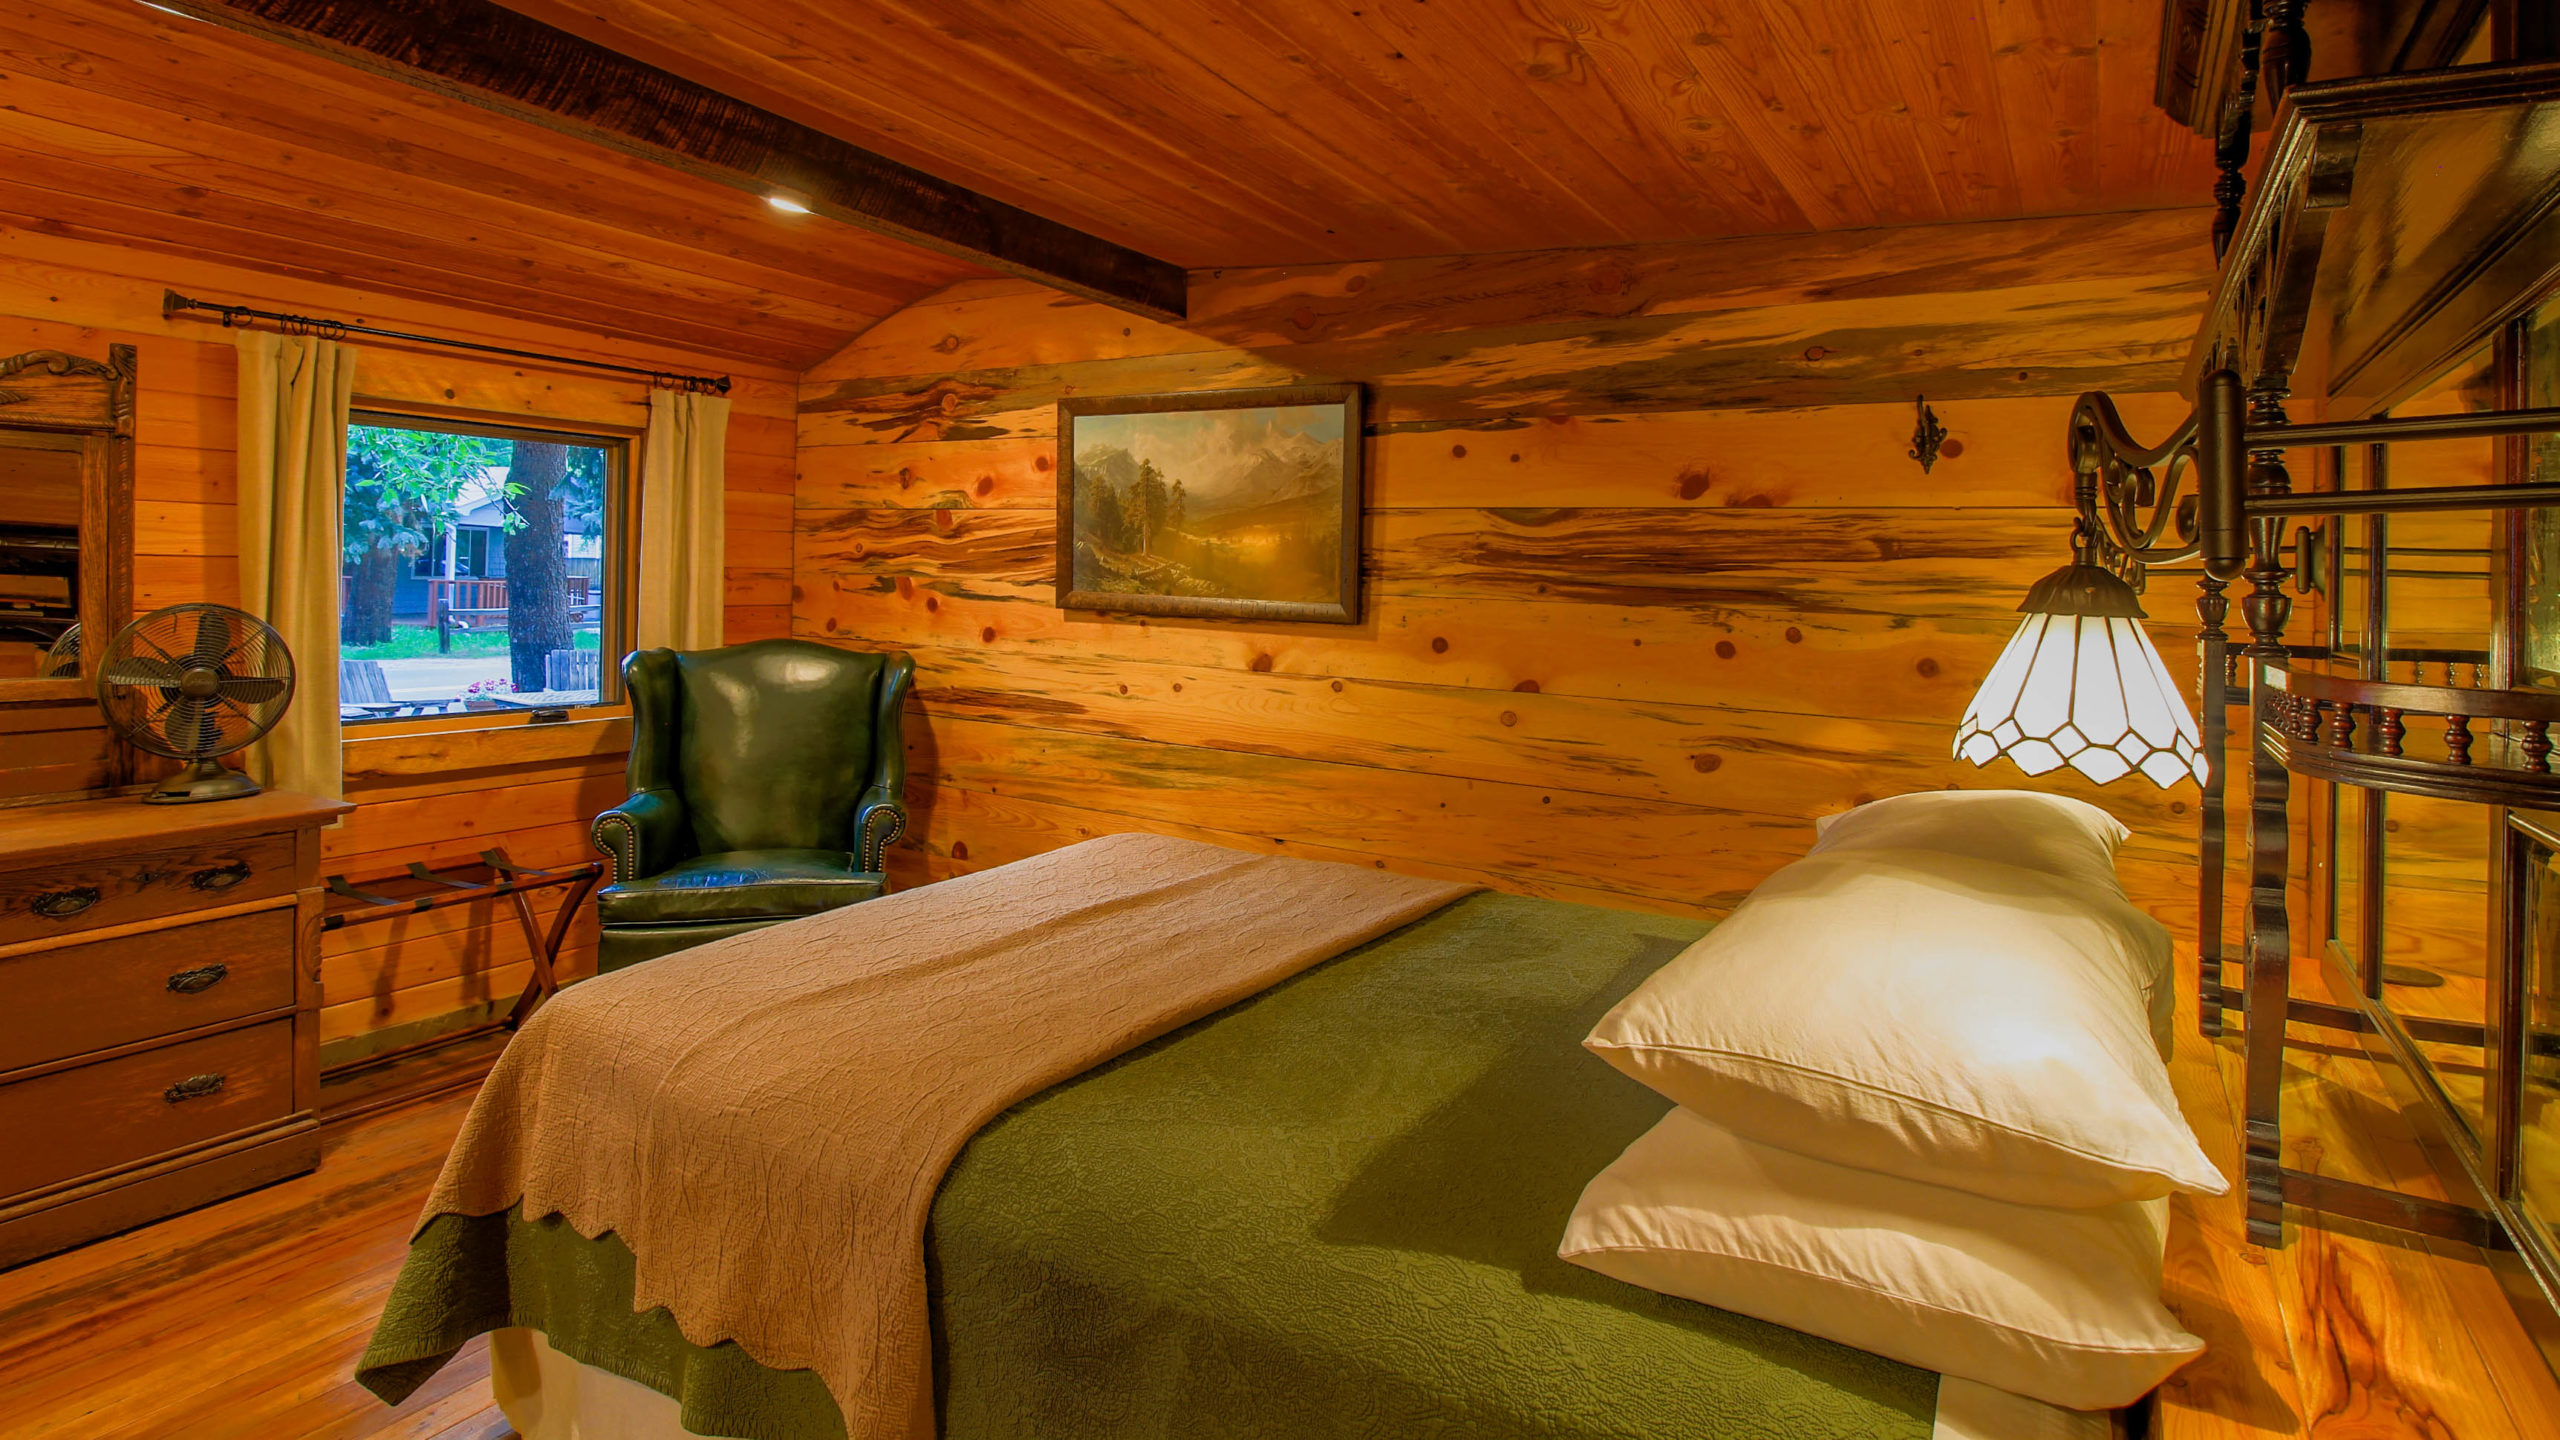 Storybook Exploration Cabin is an Extraordinary Mountain Town Vacation Home in Estes Park CO near Rocky Mountain National Park. This is an image of the front bedroom.